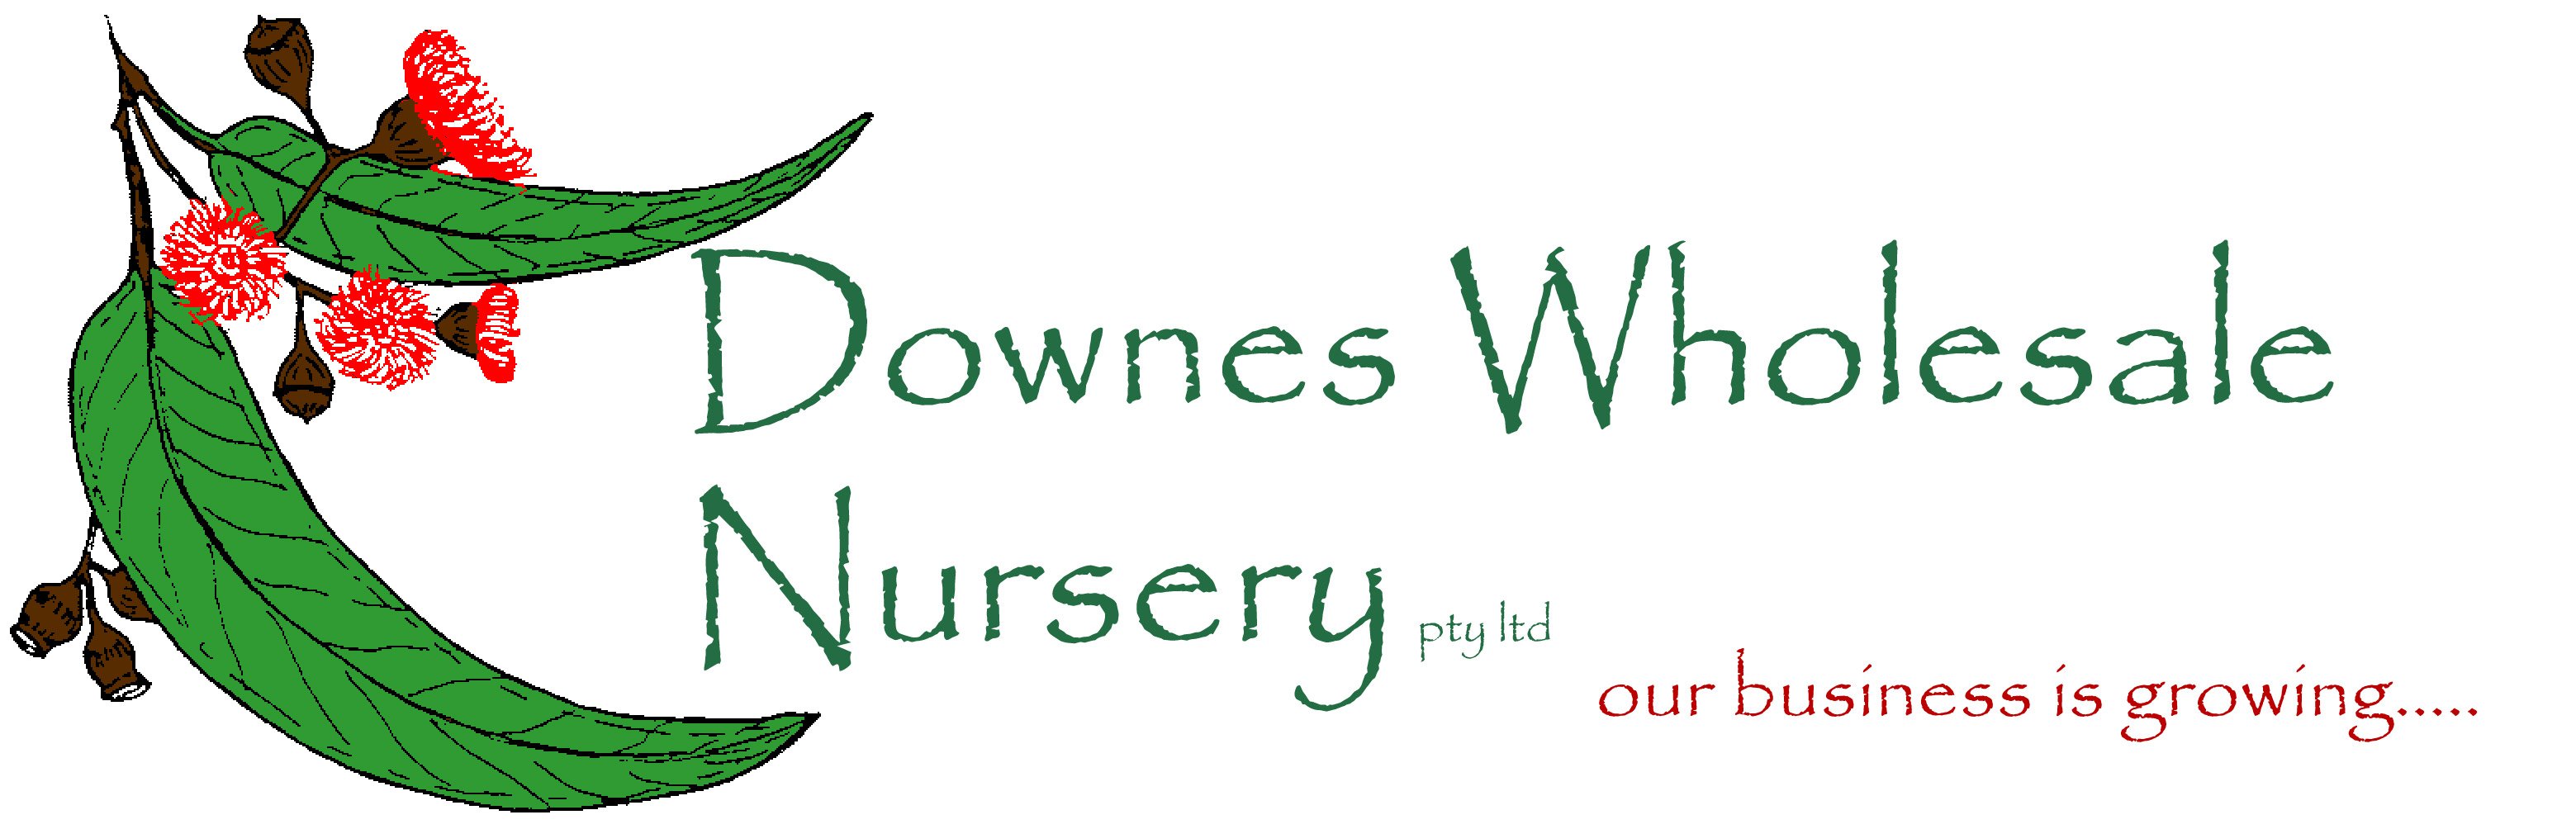 Delivery Driver Nursery Hand Green World Careers